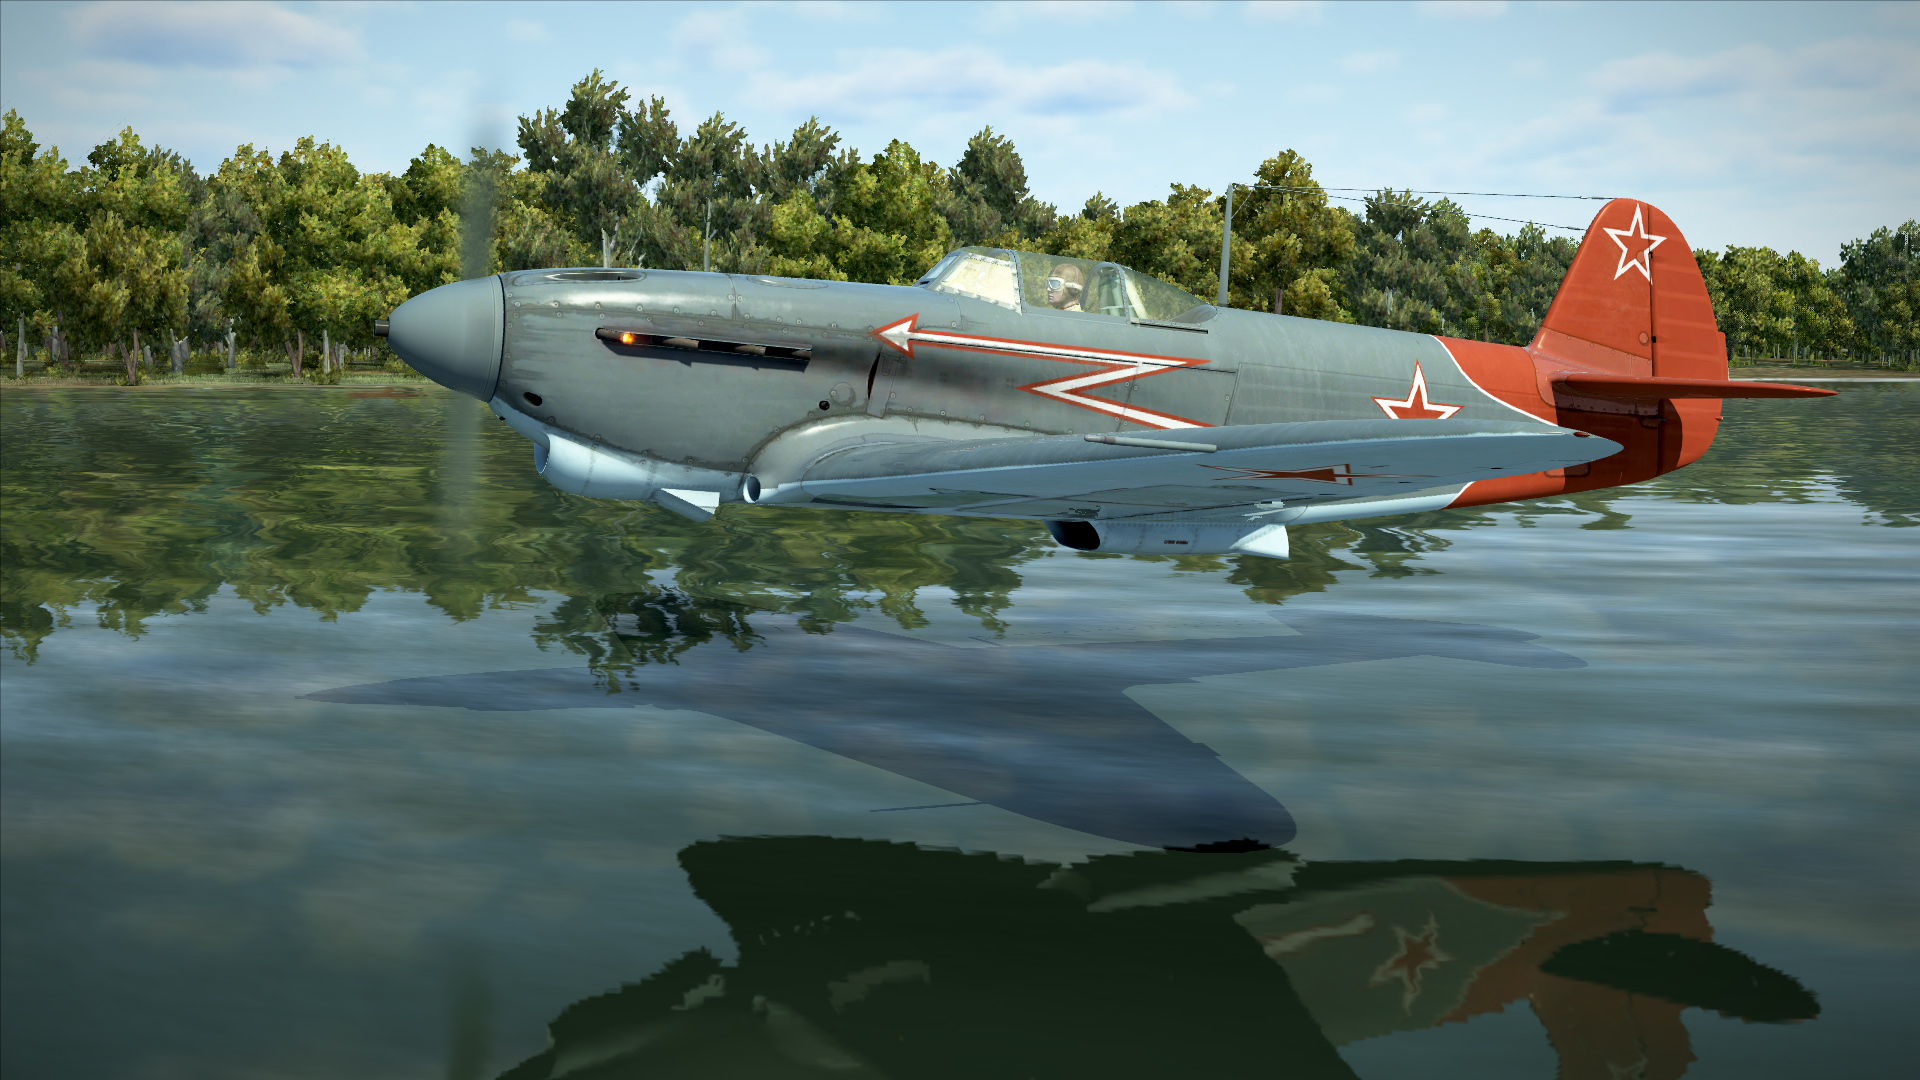 IL-2 News ONLY (not discussion) - Page 22 - ED Forums